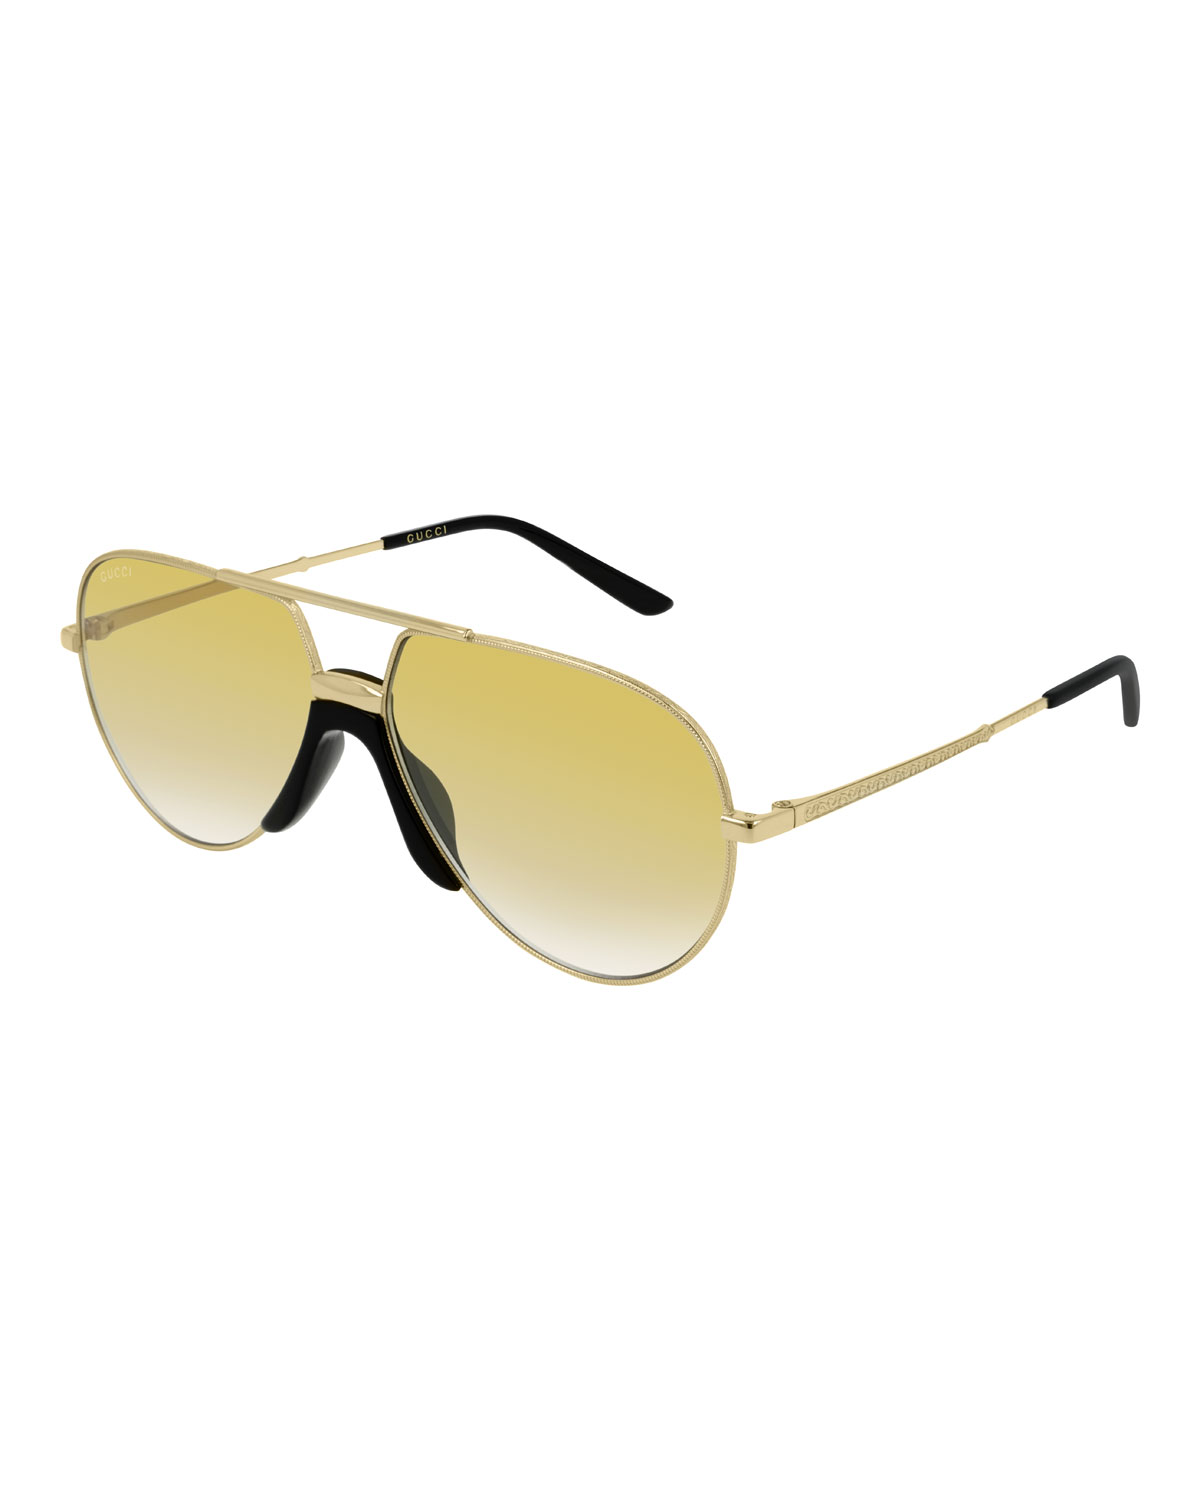 fb28bdab5b6 Gucci Men s Aviator Gold-Lens Sunglasses